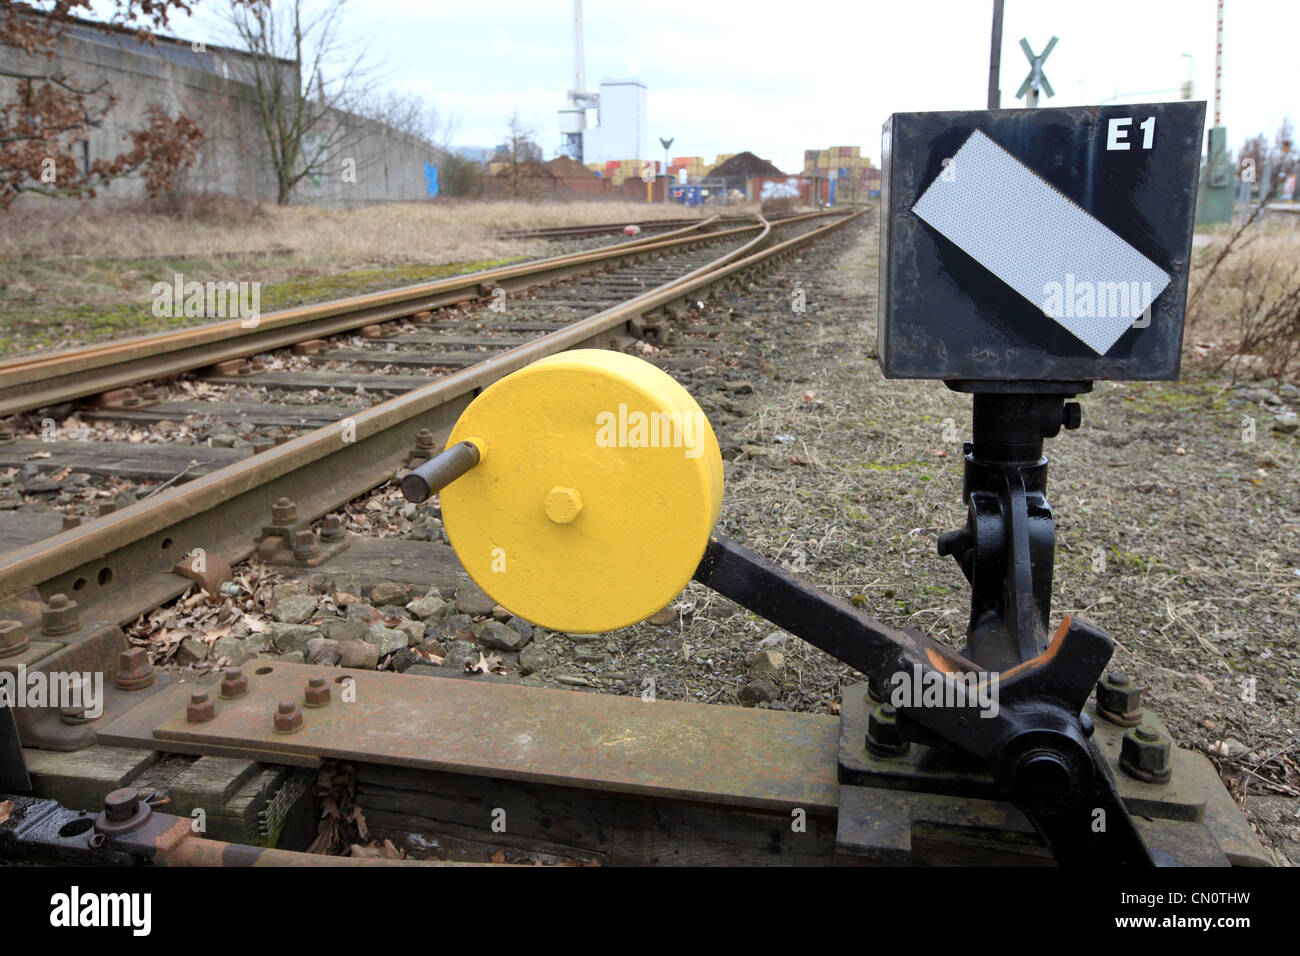 Points indication signal for railway traffic in the port of  Bremen, Germany - Stock Image